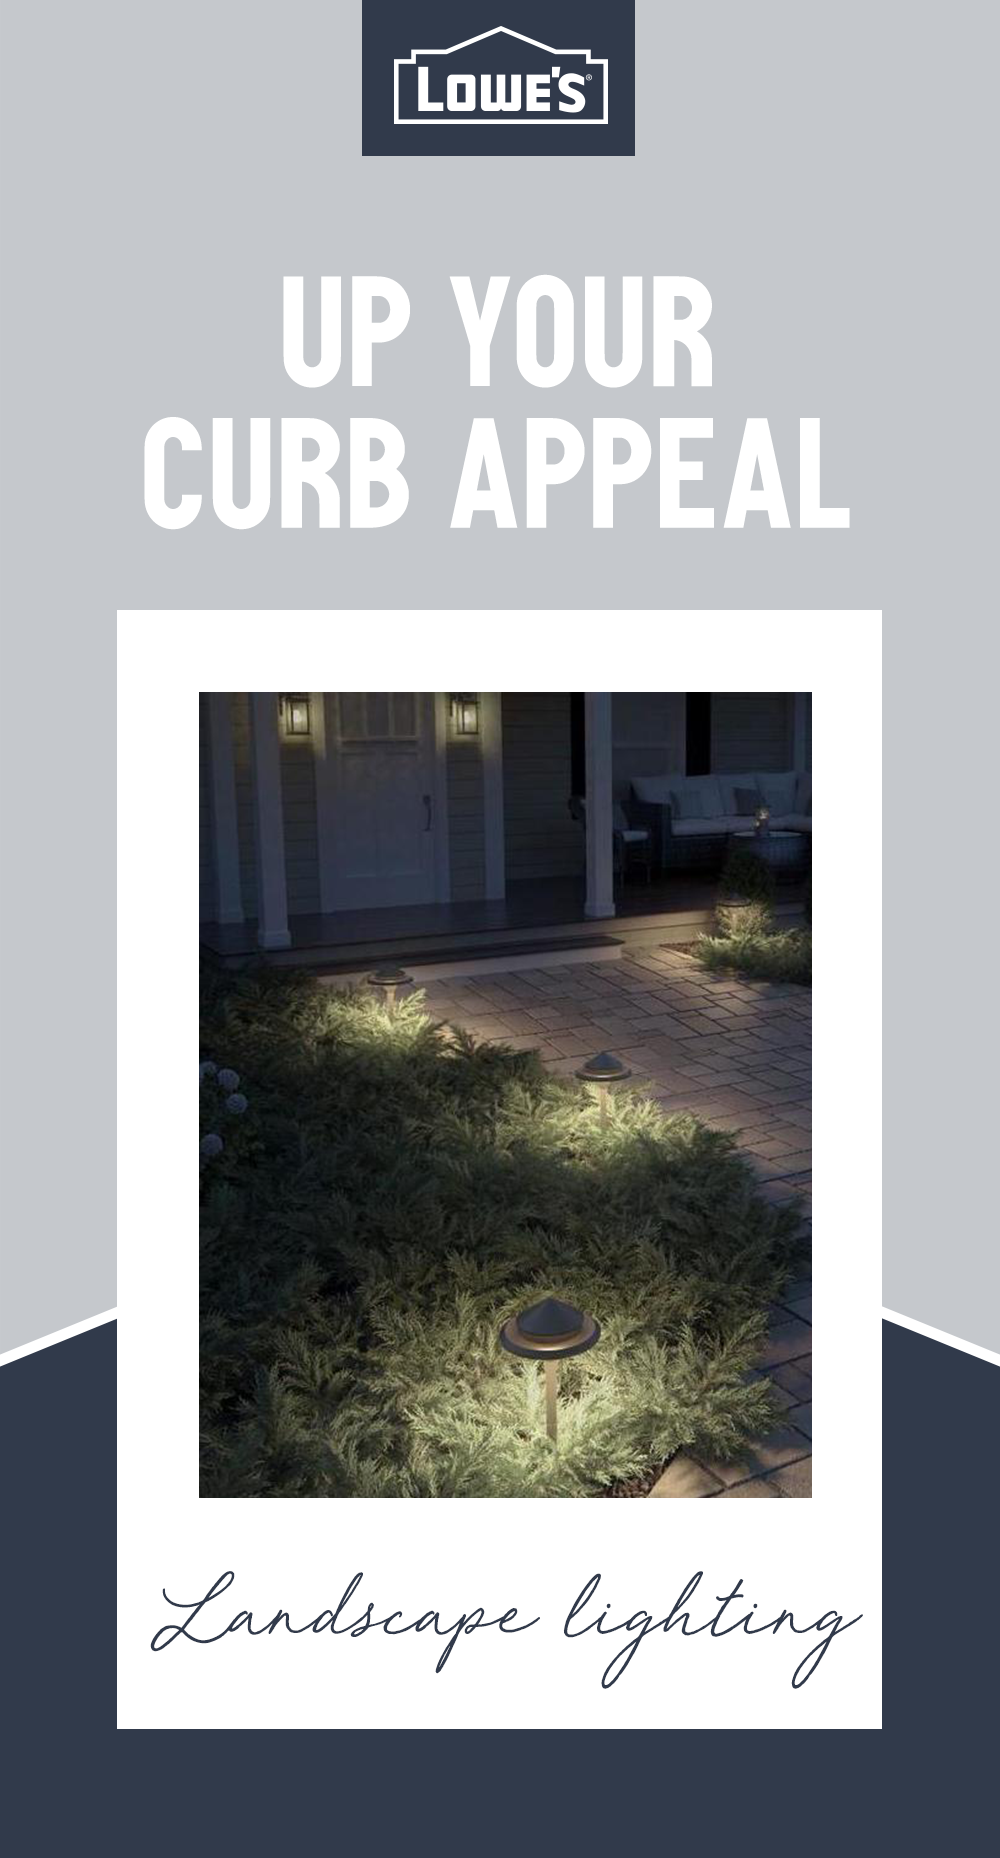 Light The Way With Outdoor Lighting Options From Lowe S These Easy To Setup Pathway Lights Will Ad Landscape Lighting Front Porch Landscape Backyard Oasis Diy